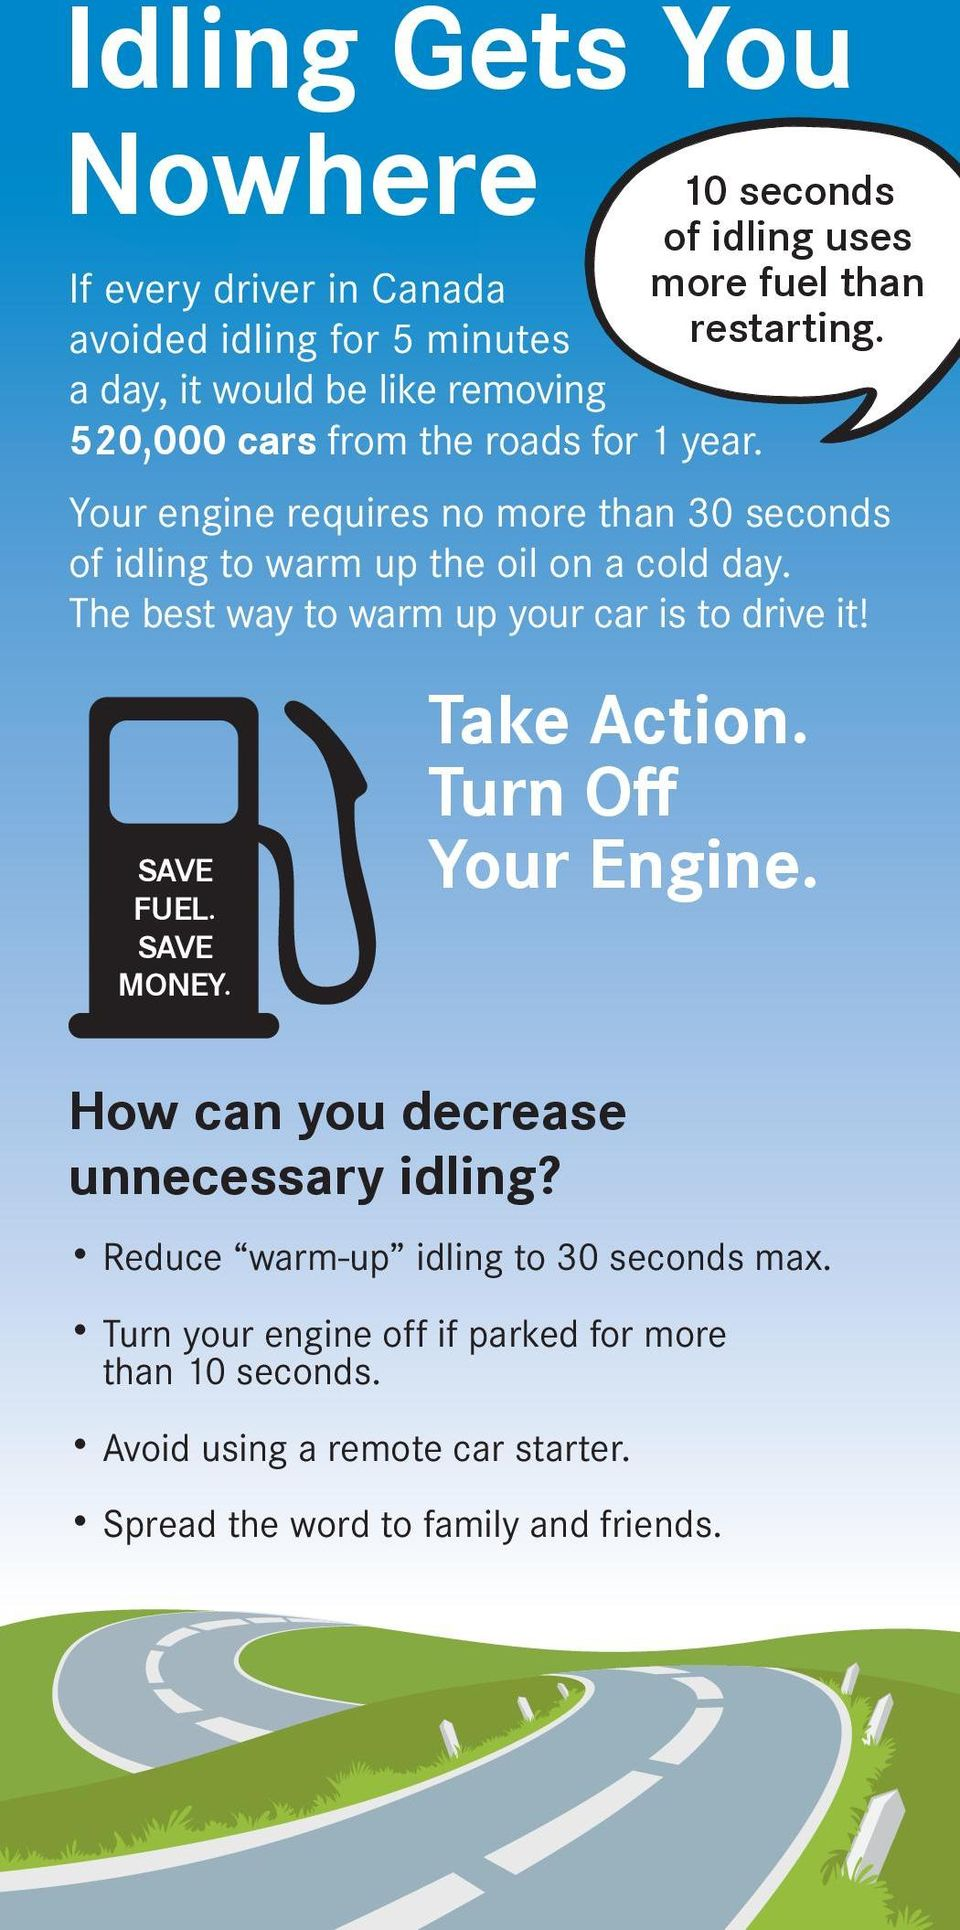 SAVE MONEY. 10 seconds of idling uses more fuel than restarting. Take Action. Turn Off Your Engine. How can you decrease unnecessary idling?